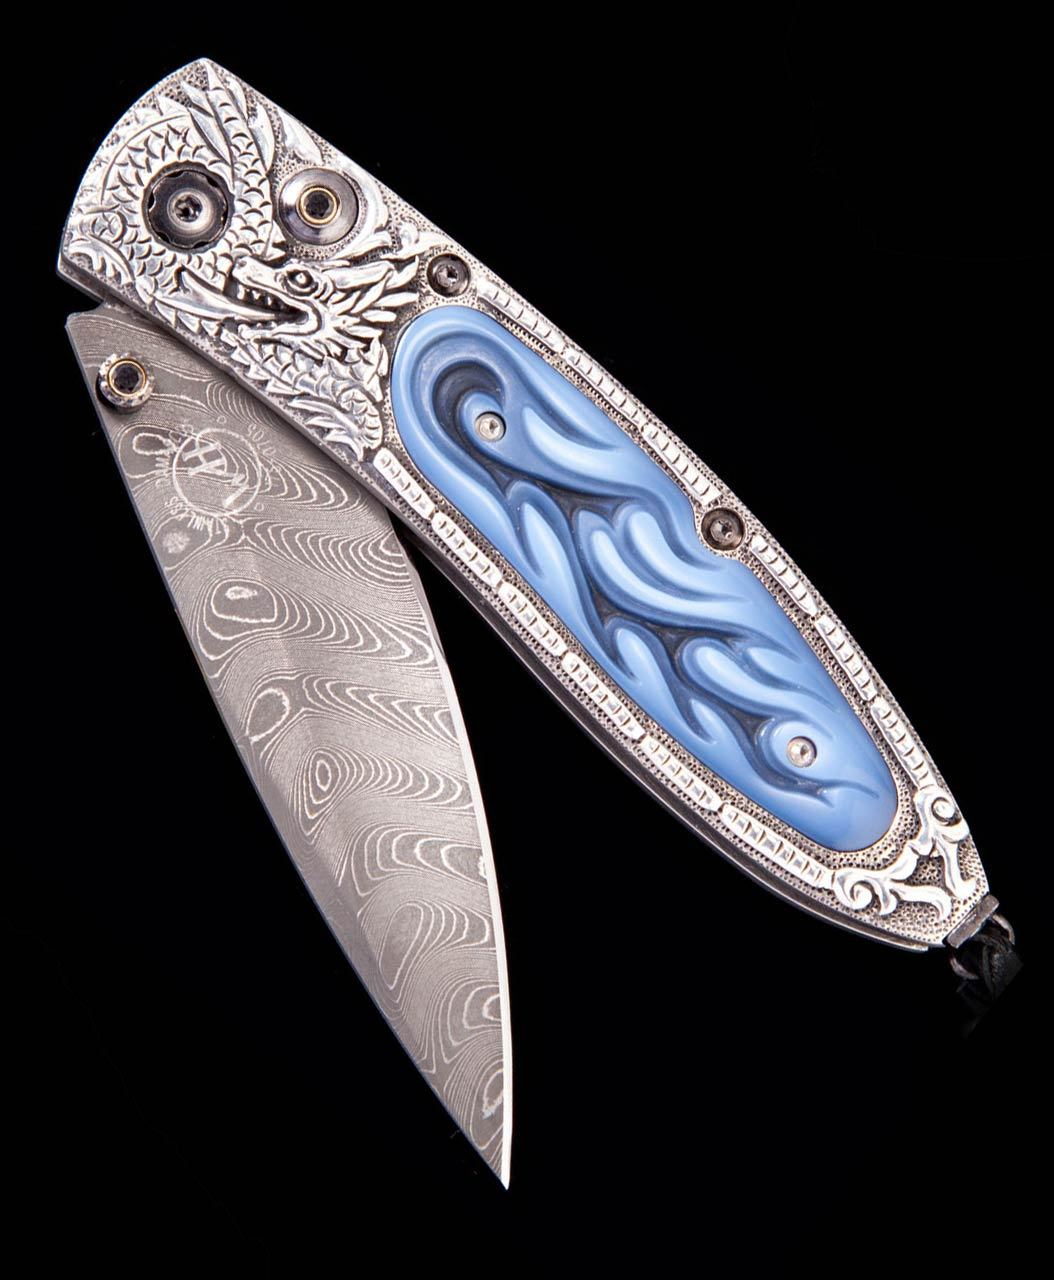 William Henry Monarch Dragon Fire Carved Agate Pocket Knife